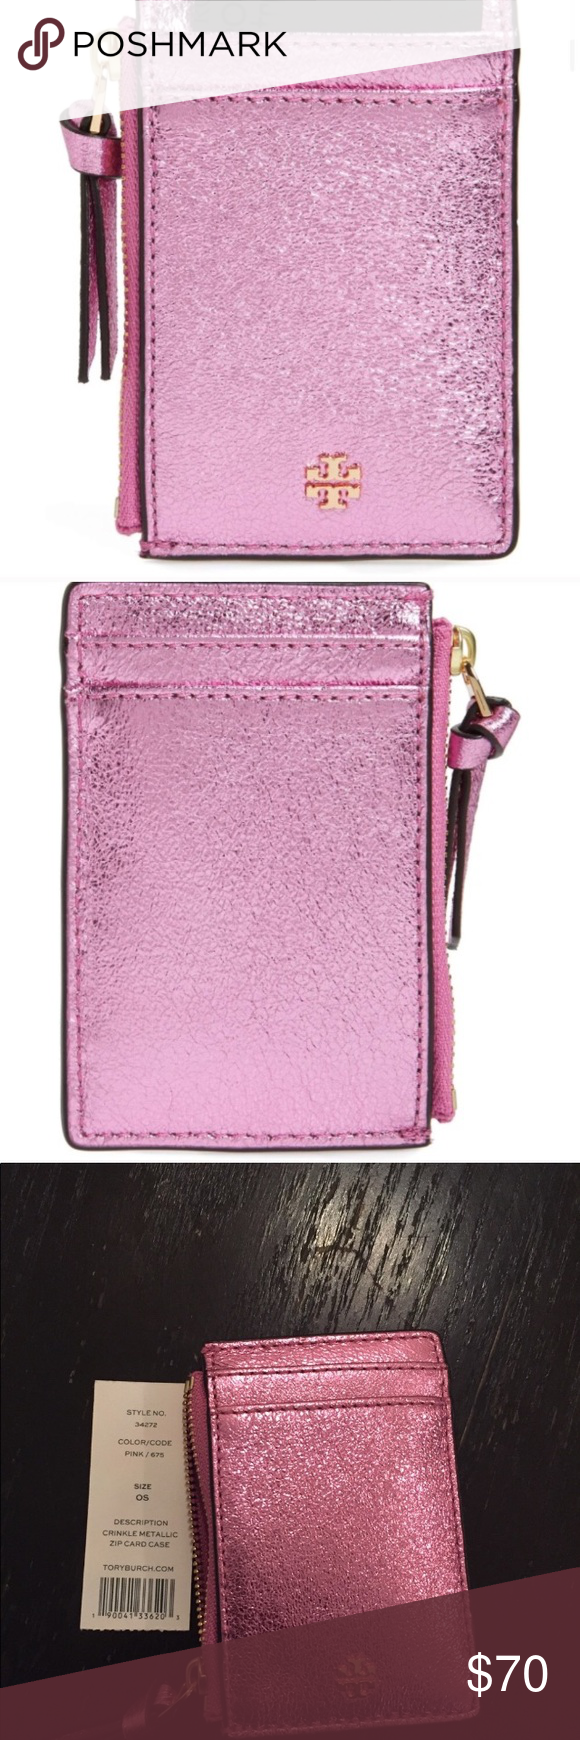 50597616c10f New Tory Burch crinkle metallic card case Crinkled-finish metallic leather  adds luxe polish to a compact zip-top card case sized just right to hold  the ...